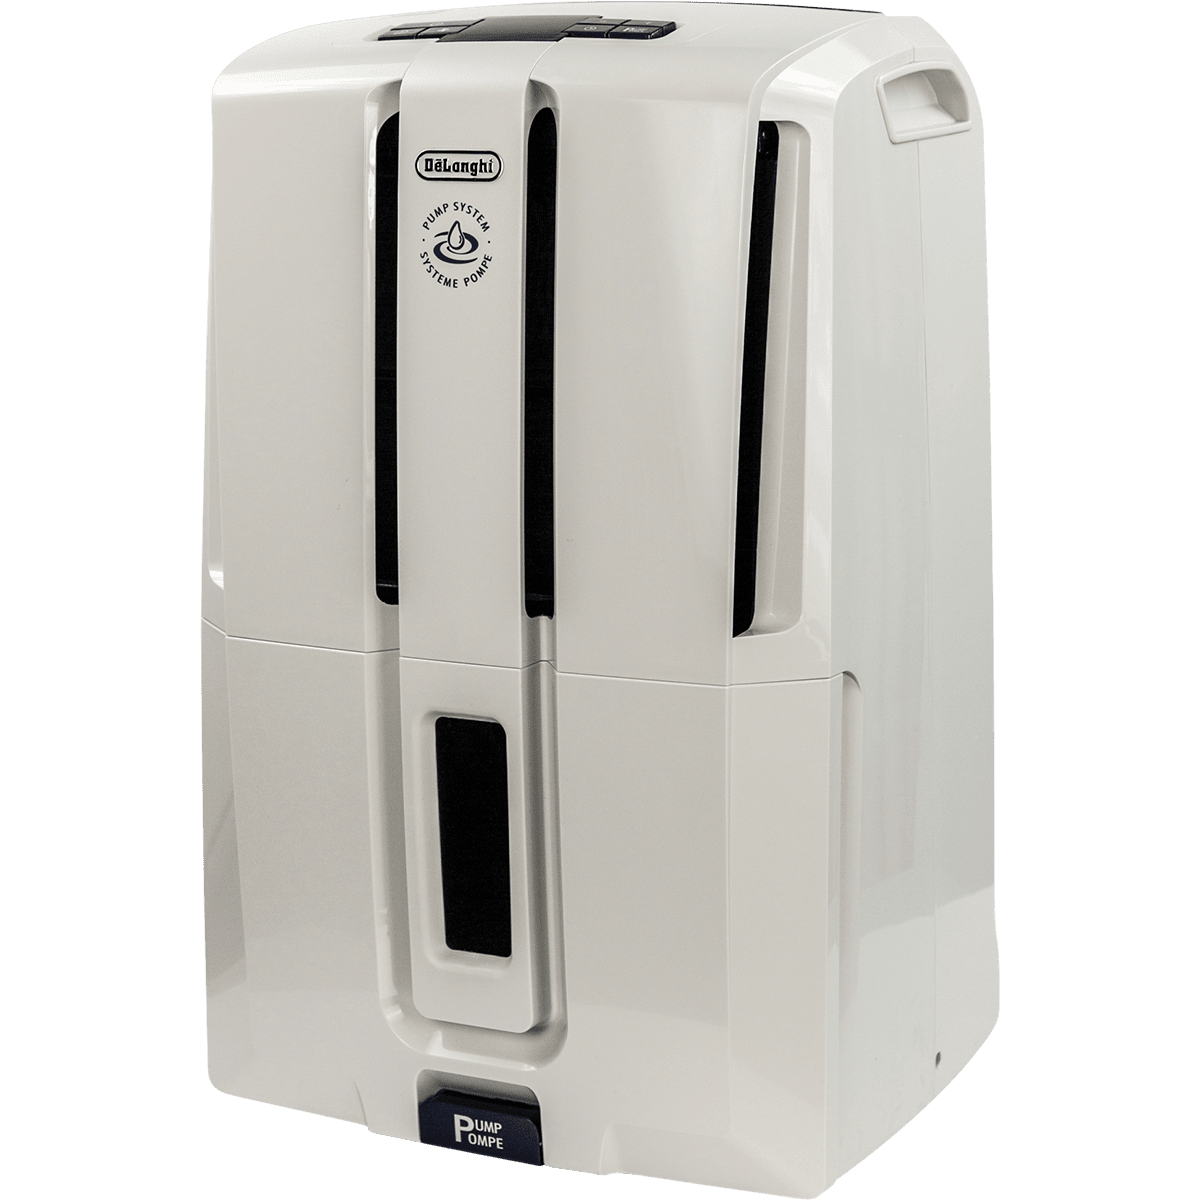 DeLonghi 50 Pint Dehumidifier with Pump DDX50PE